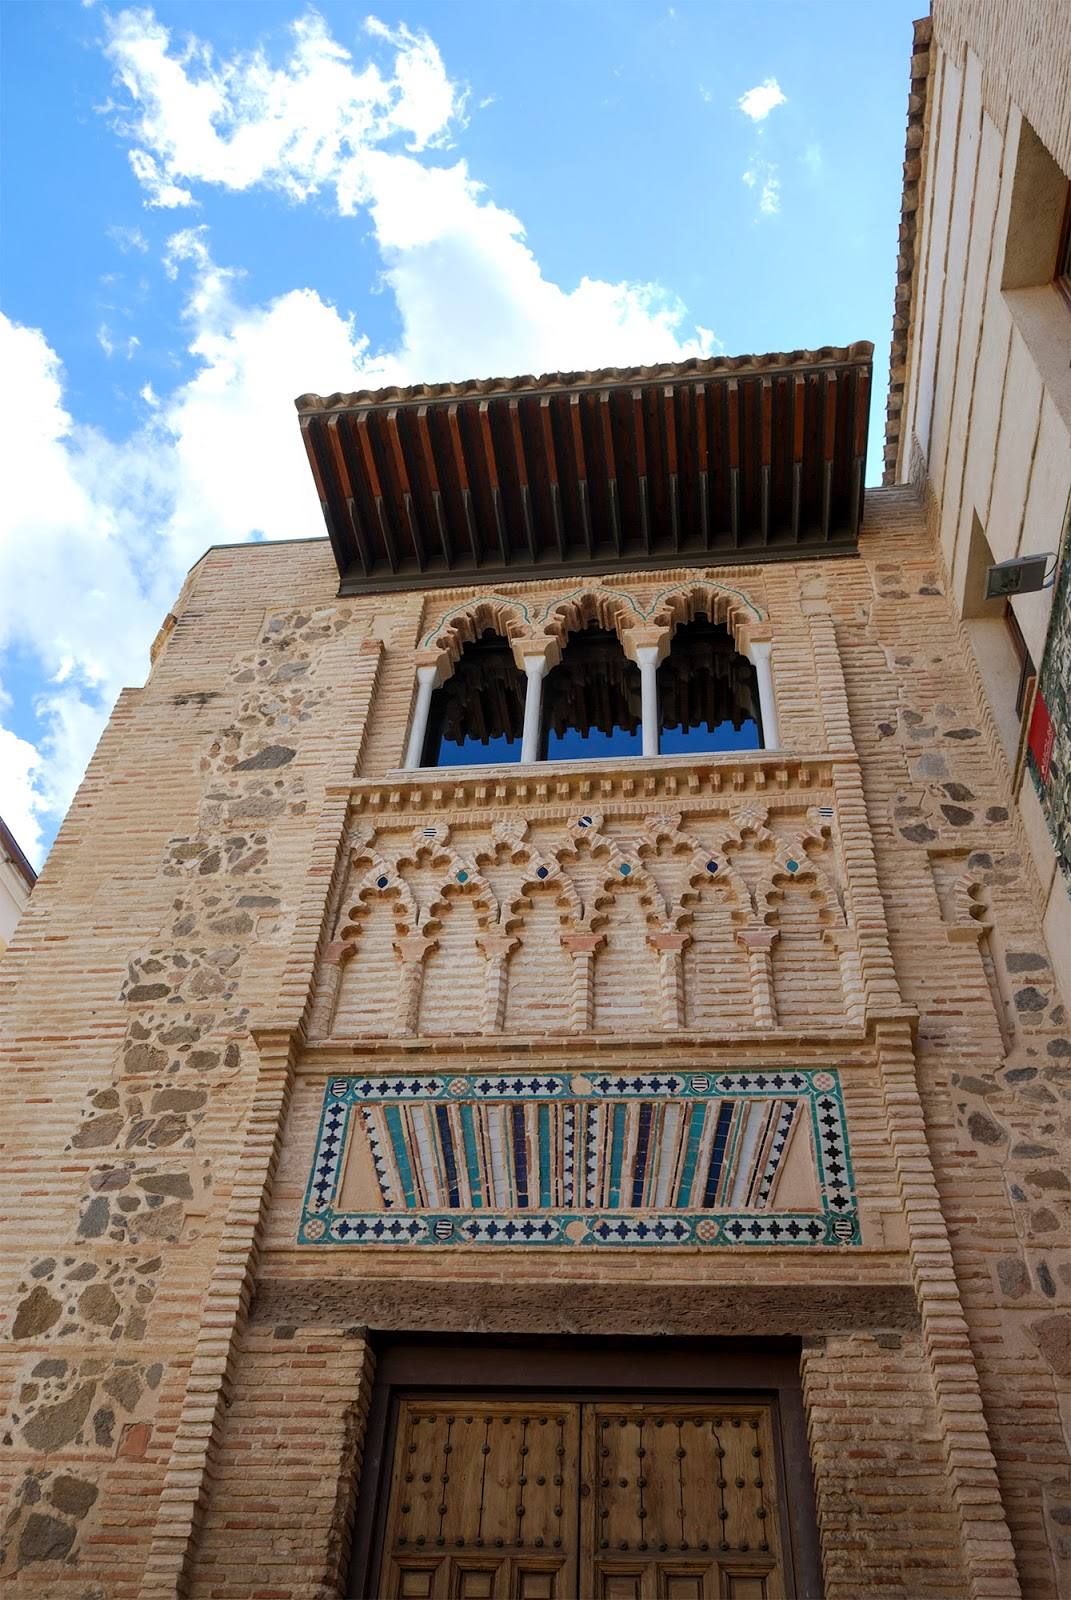 architecture mudejar moorish islamic toledo spain landmark history travel guide tourism day trip itinerary